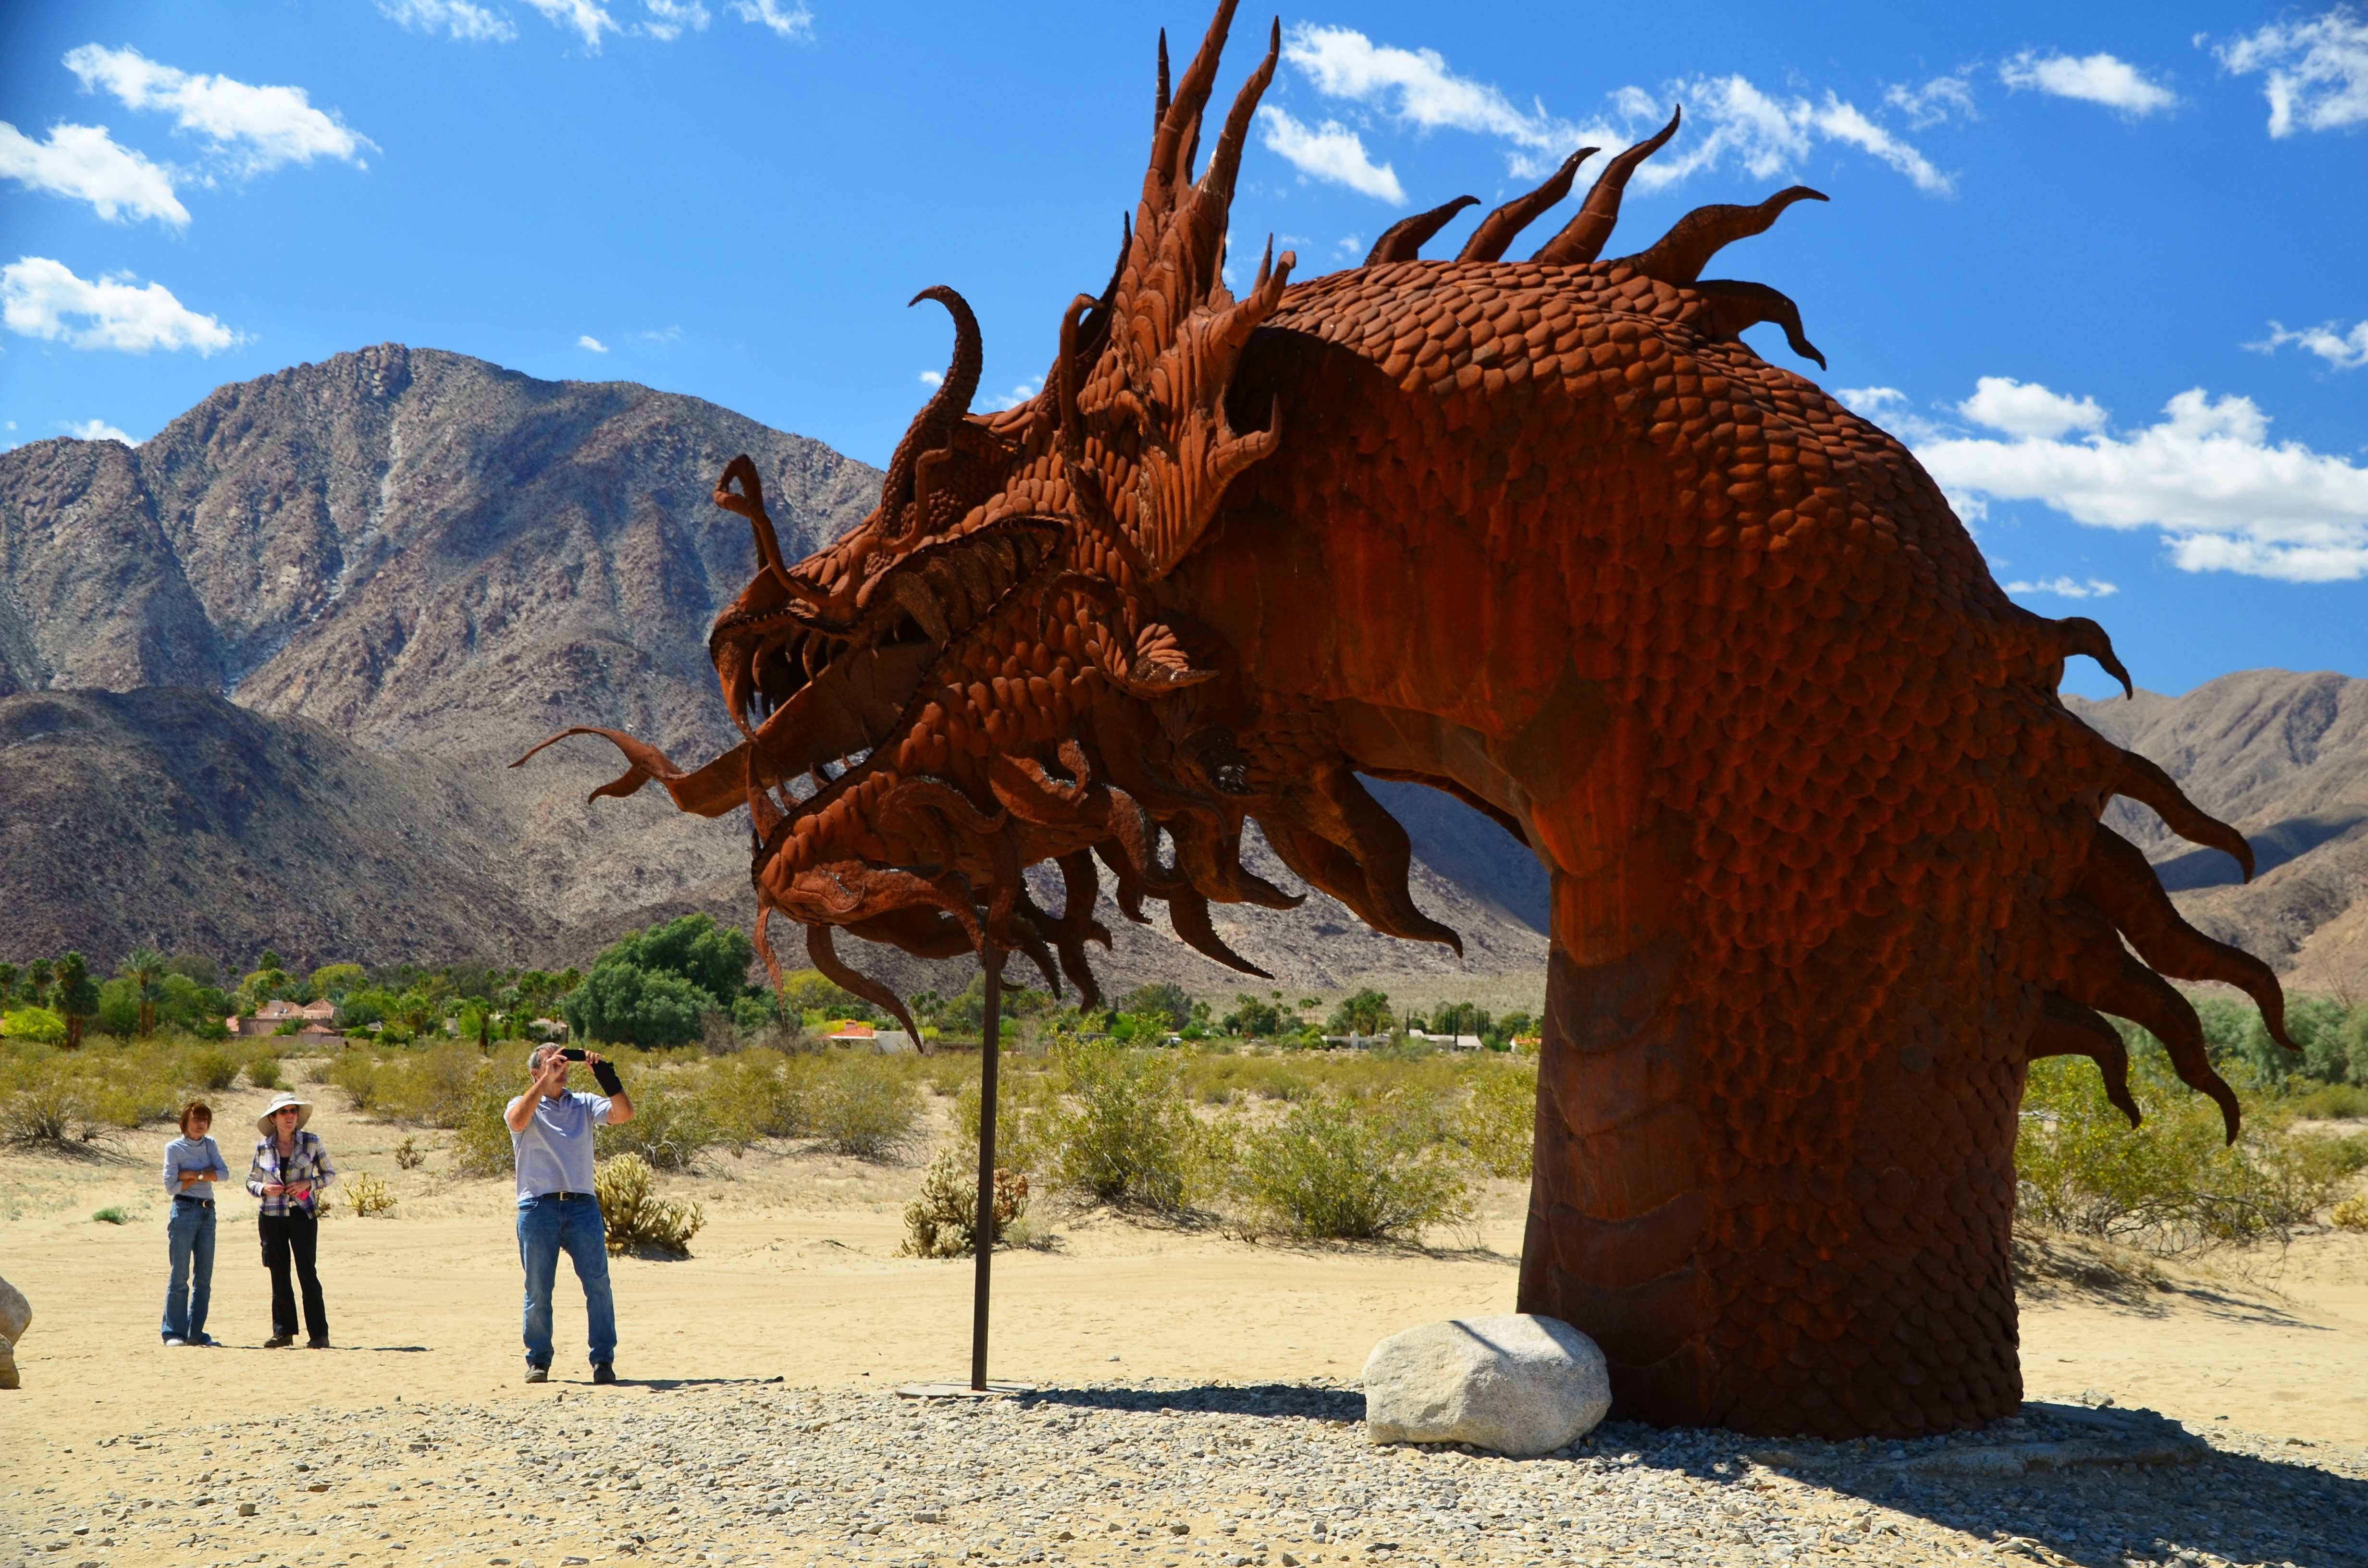 Visitors to the Borrego Springs area marvel at one section of a metal-sculpture serpent that stretches all the way across Borrego Springs Road.